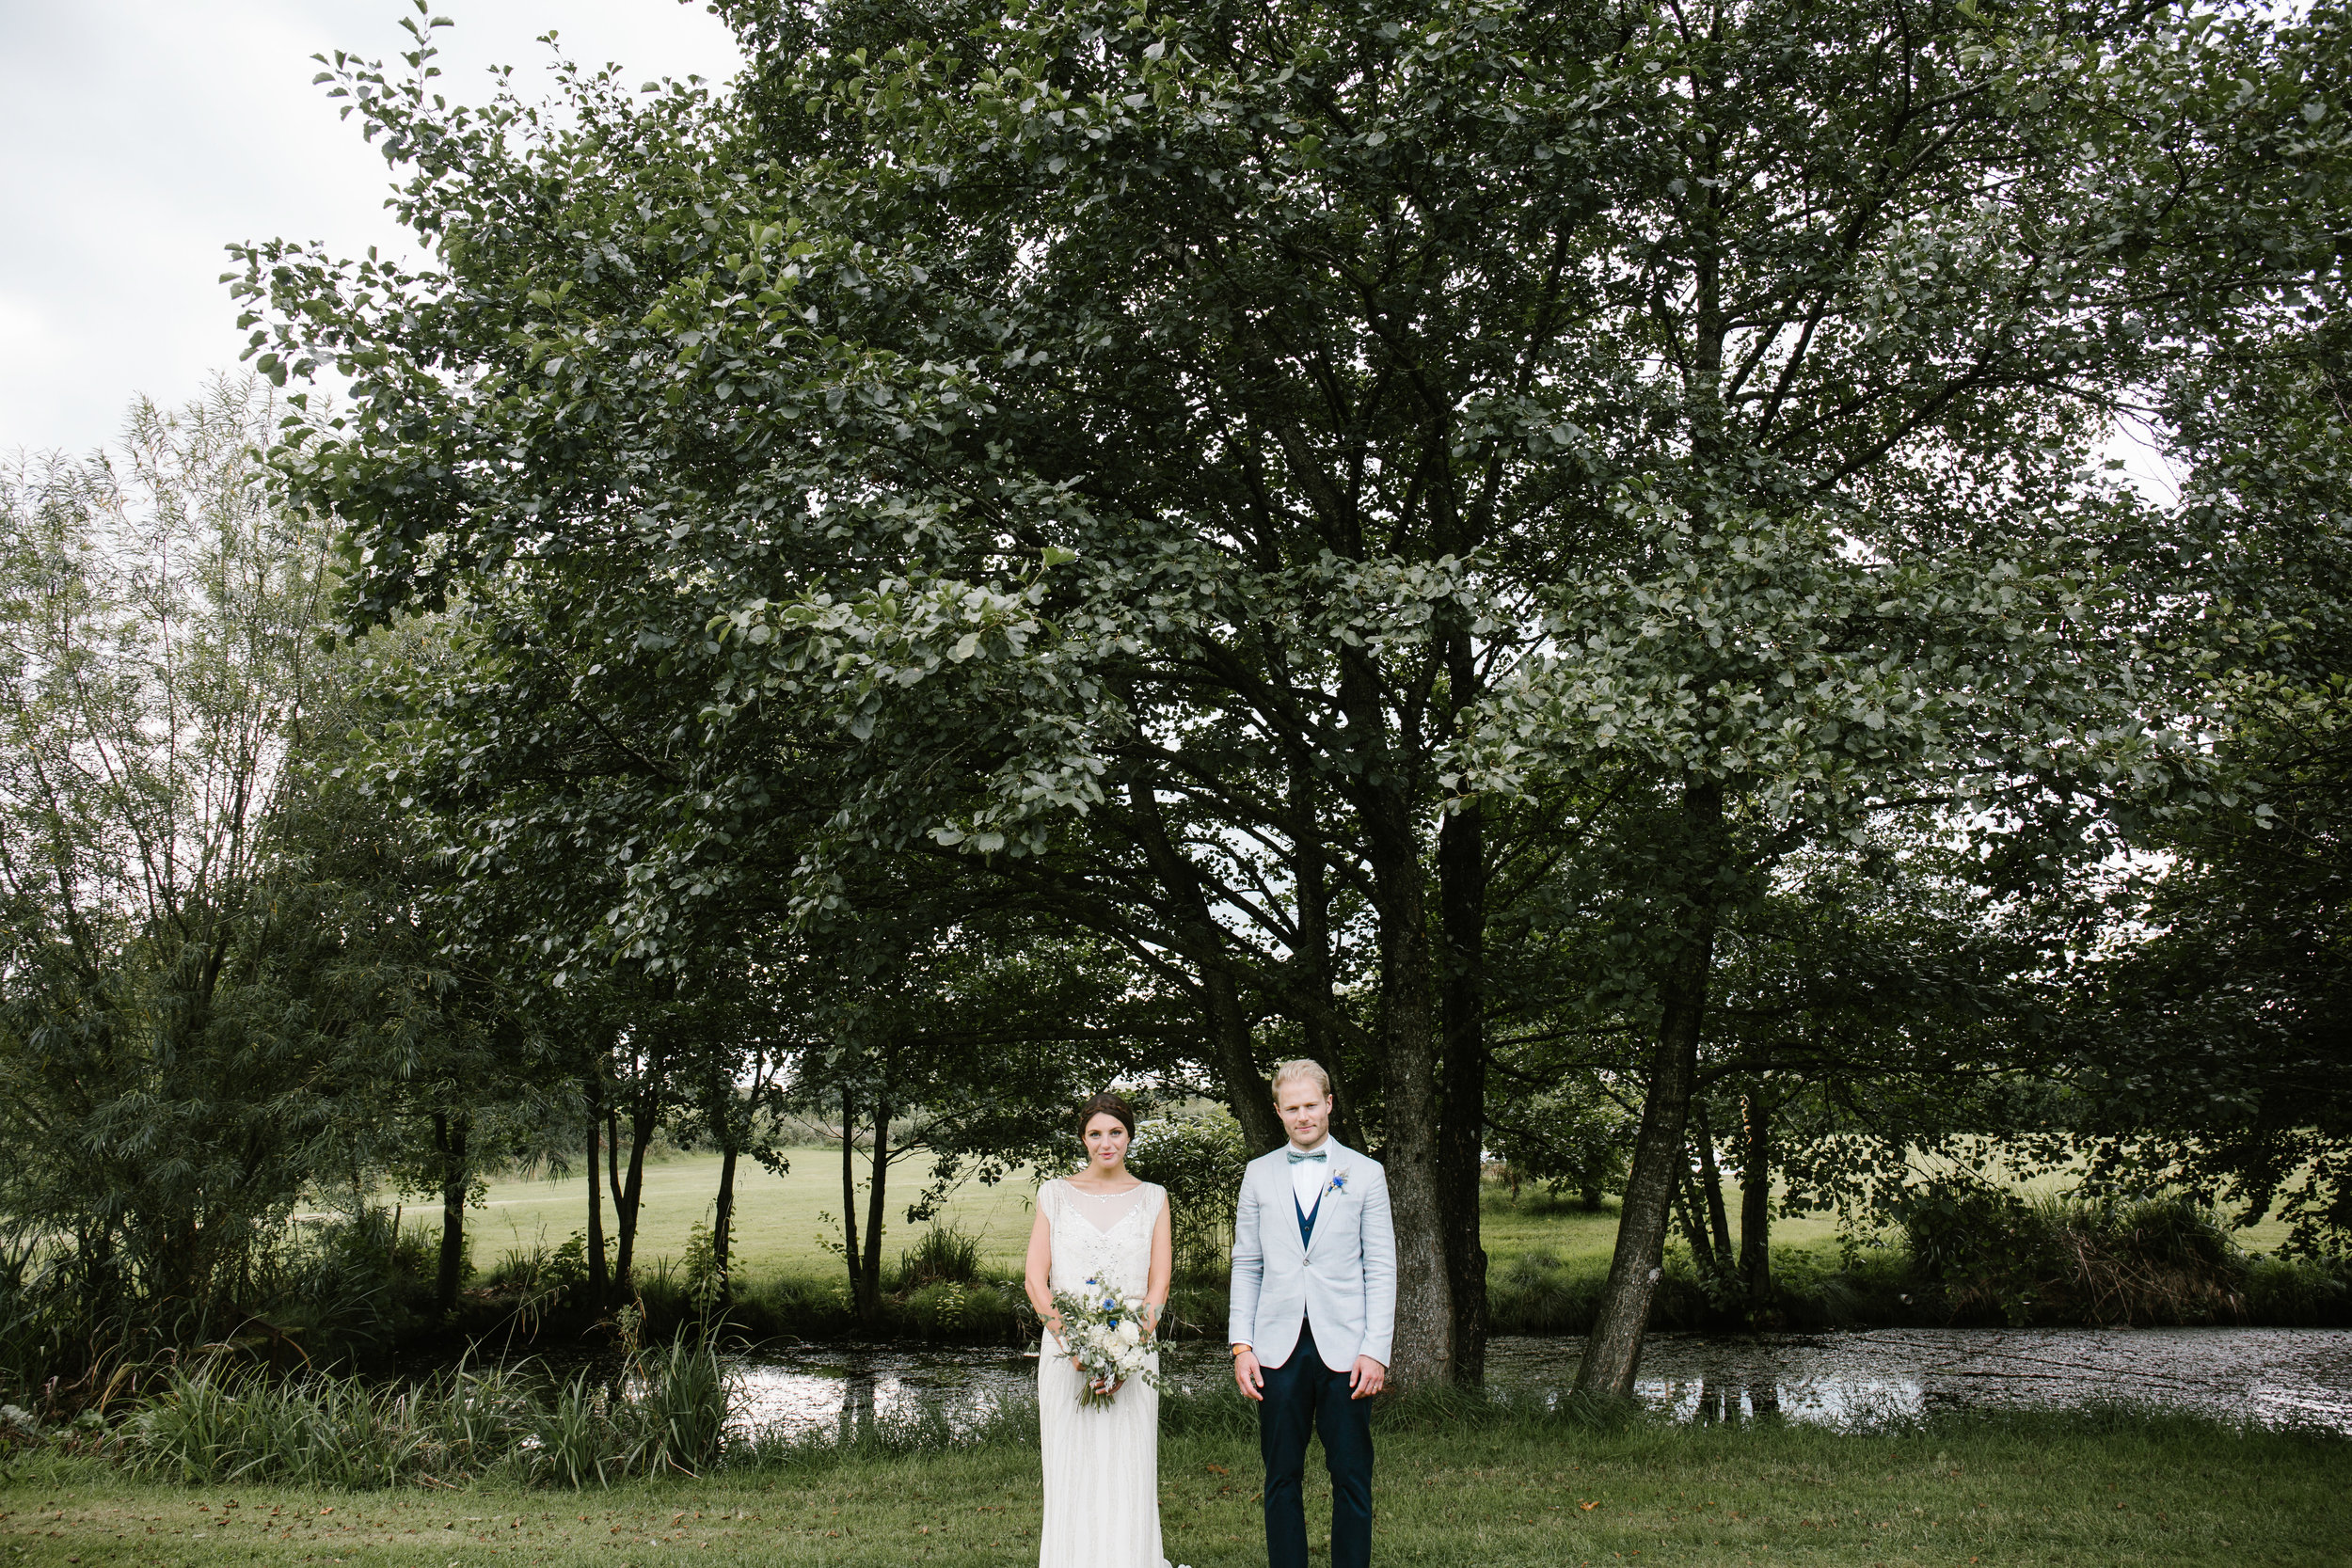 quirky photo of bride and groom stood together in the back garden of where they got married